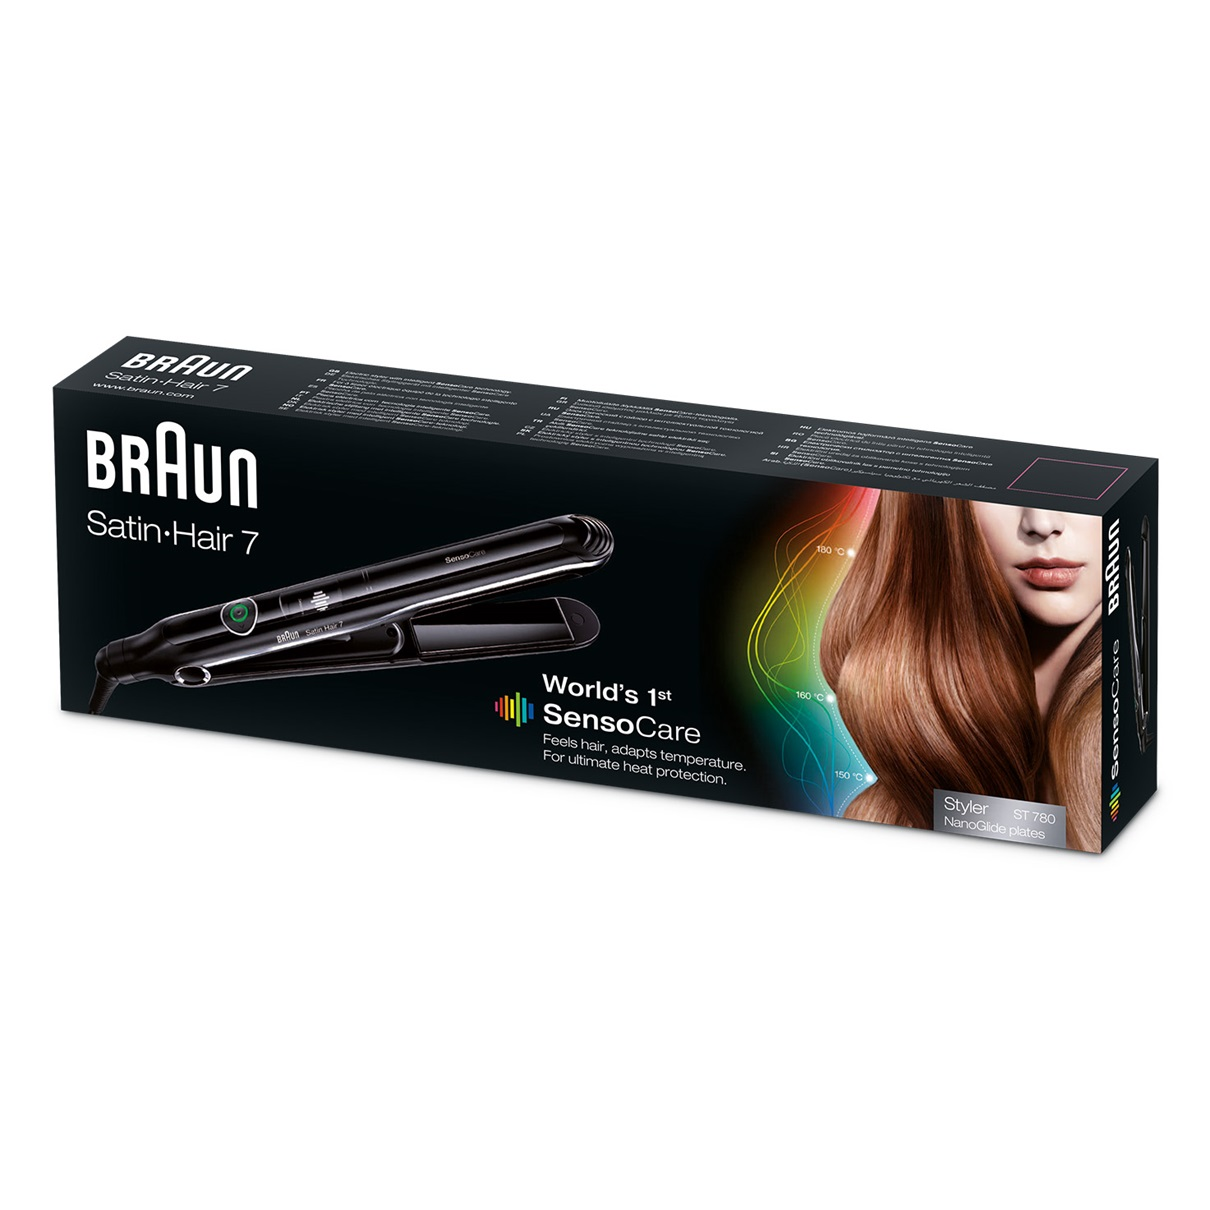 Braun Satin Hair 7 ST780 world's 1st SensoCare styler - packaging